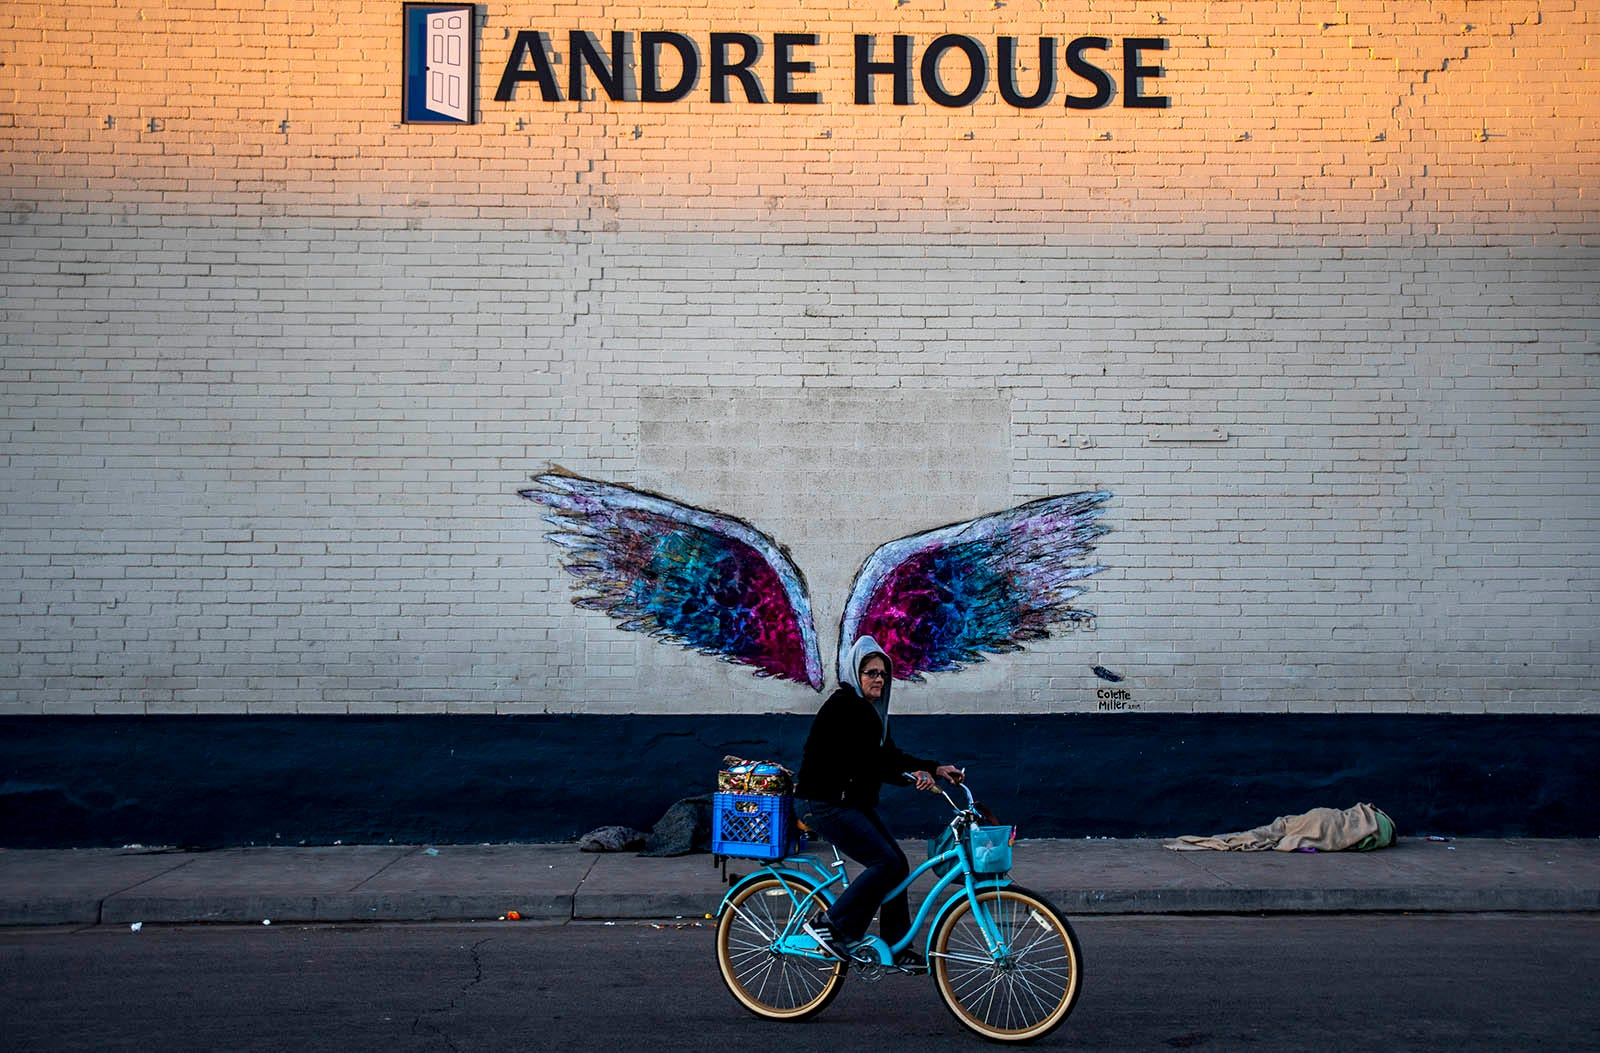 Darlene Carchedi, known as Mama D, bikes to the Andre House in Phoenix for dinner on Feb. 26, 2020.